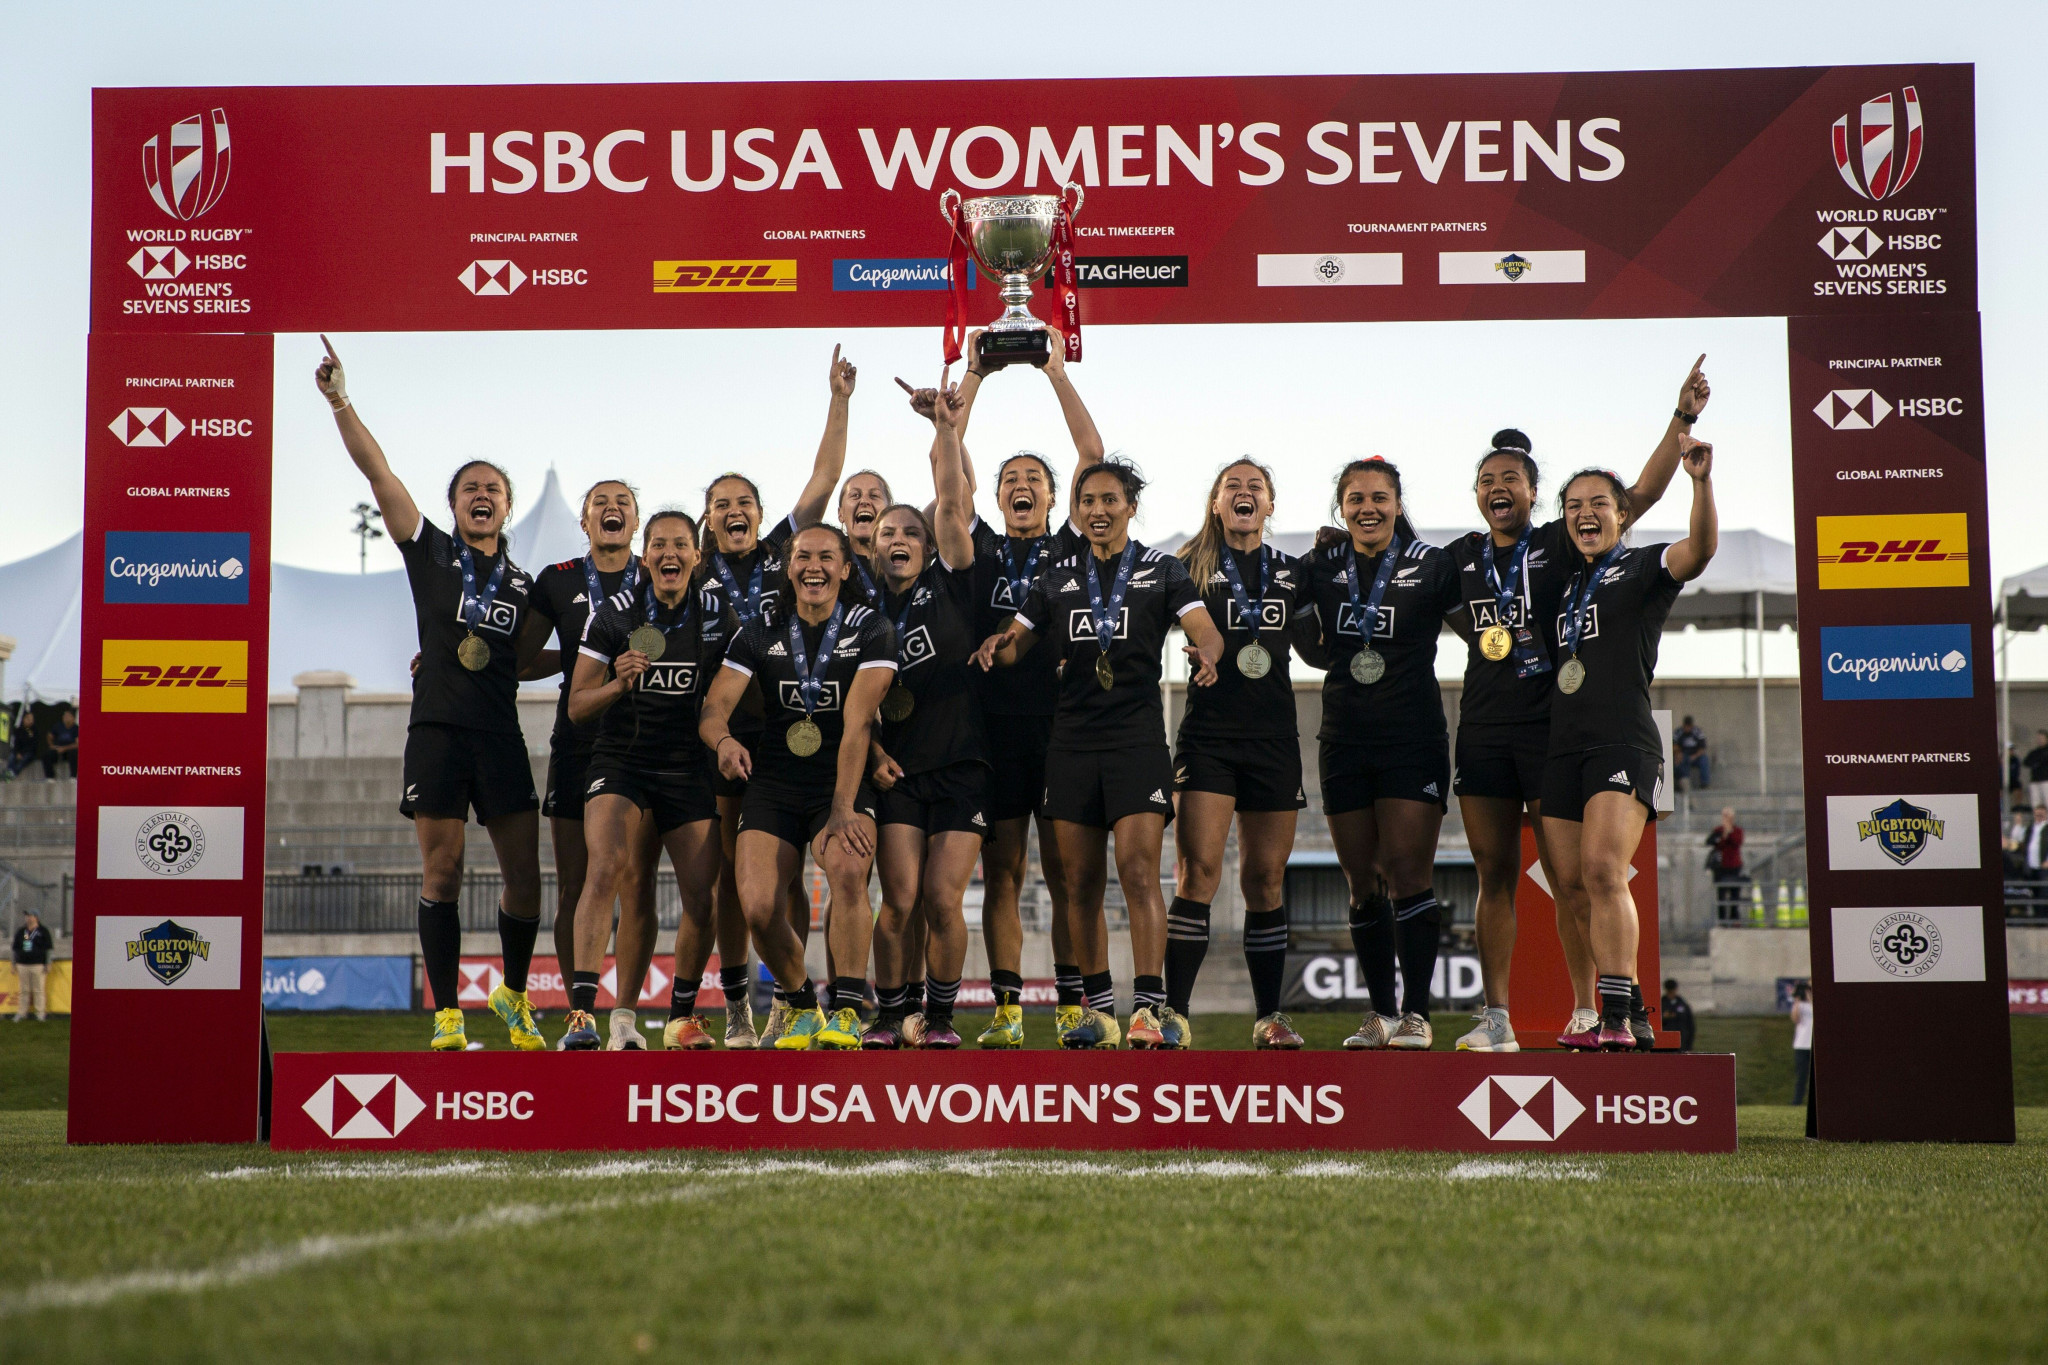 New Zealand celebrate winning the opening event of the 2018-2019 World Rugby Women's Sevens Series after beating the hosts United States in Denver ©Getty Images